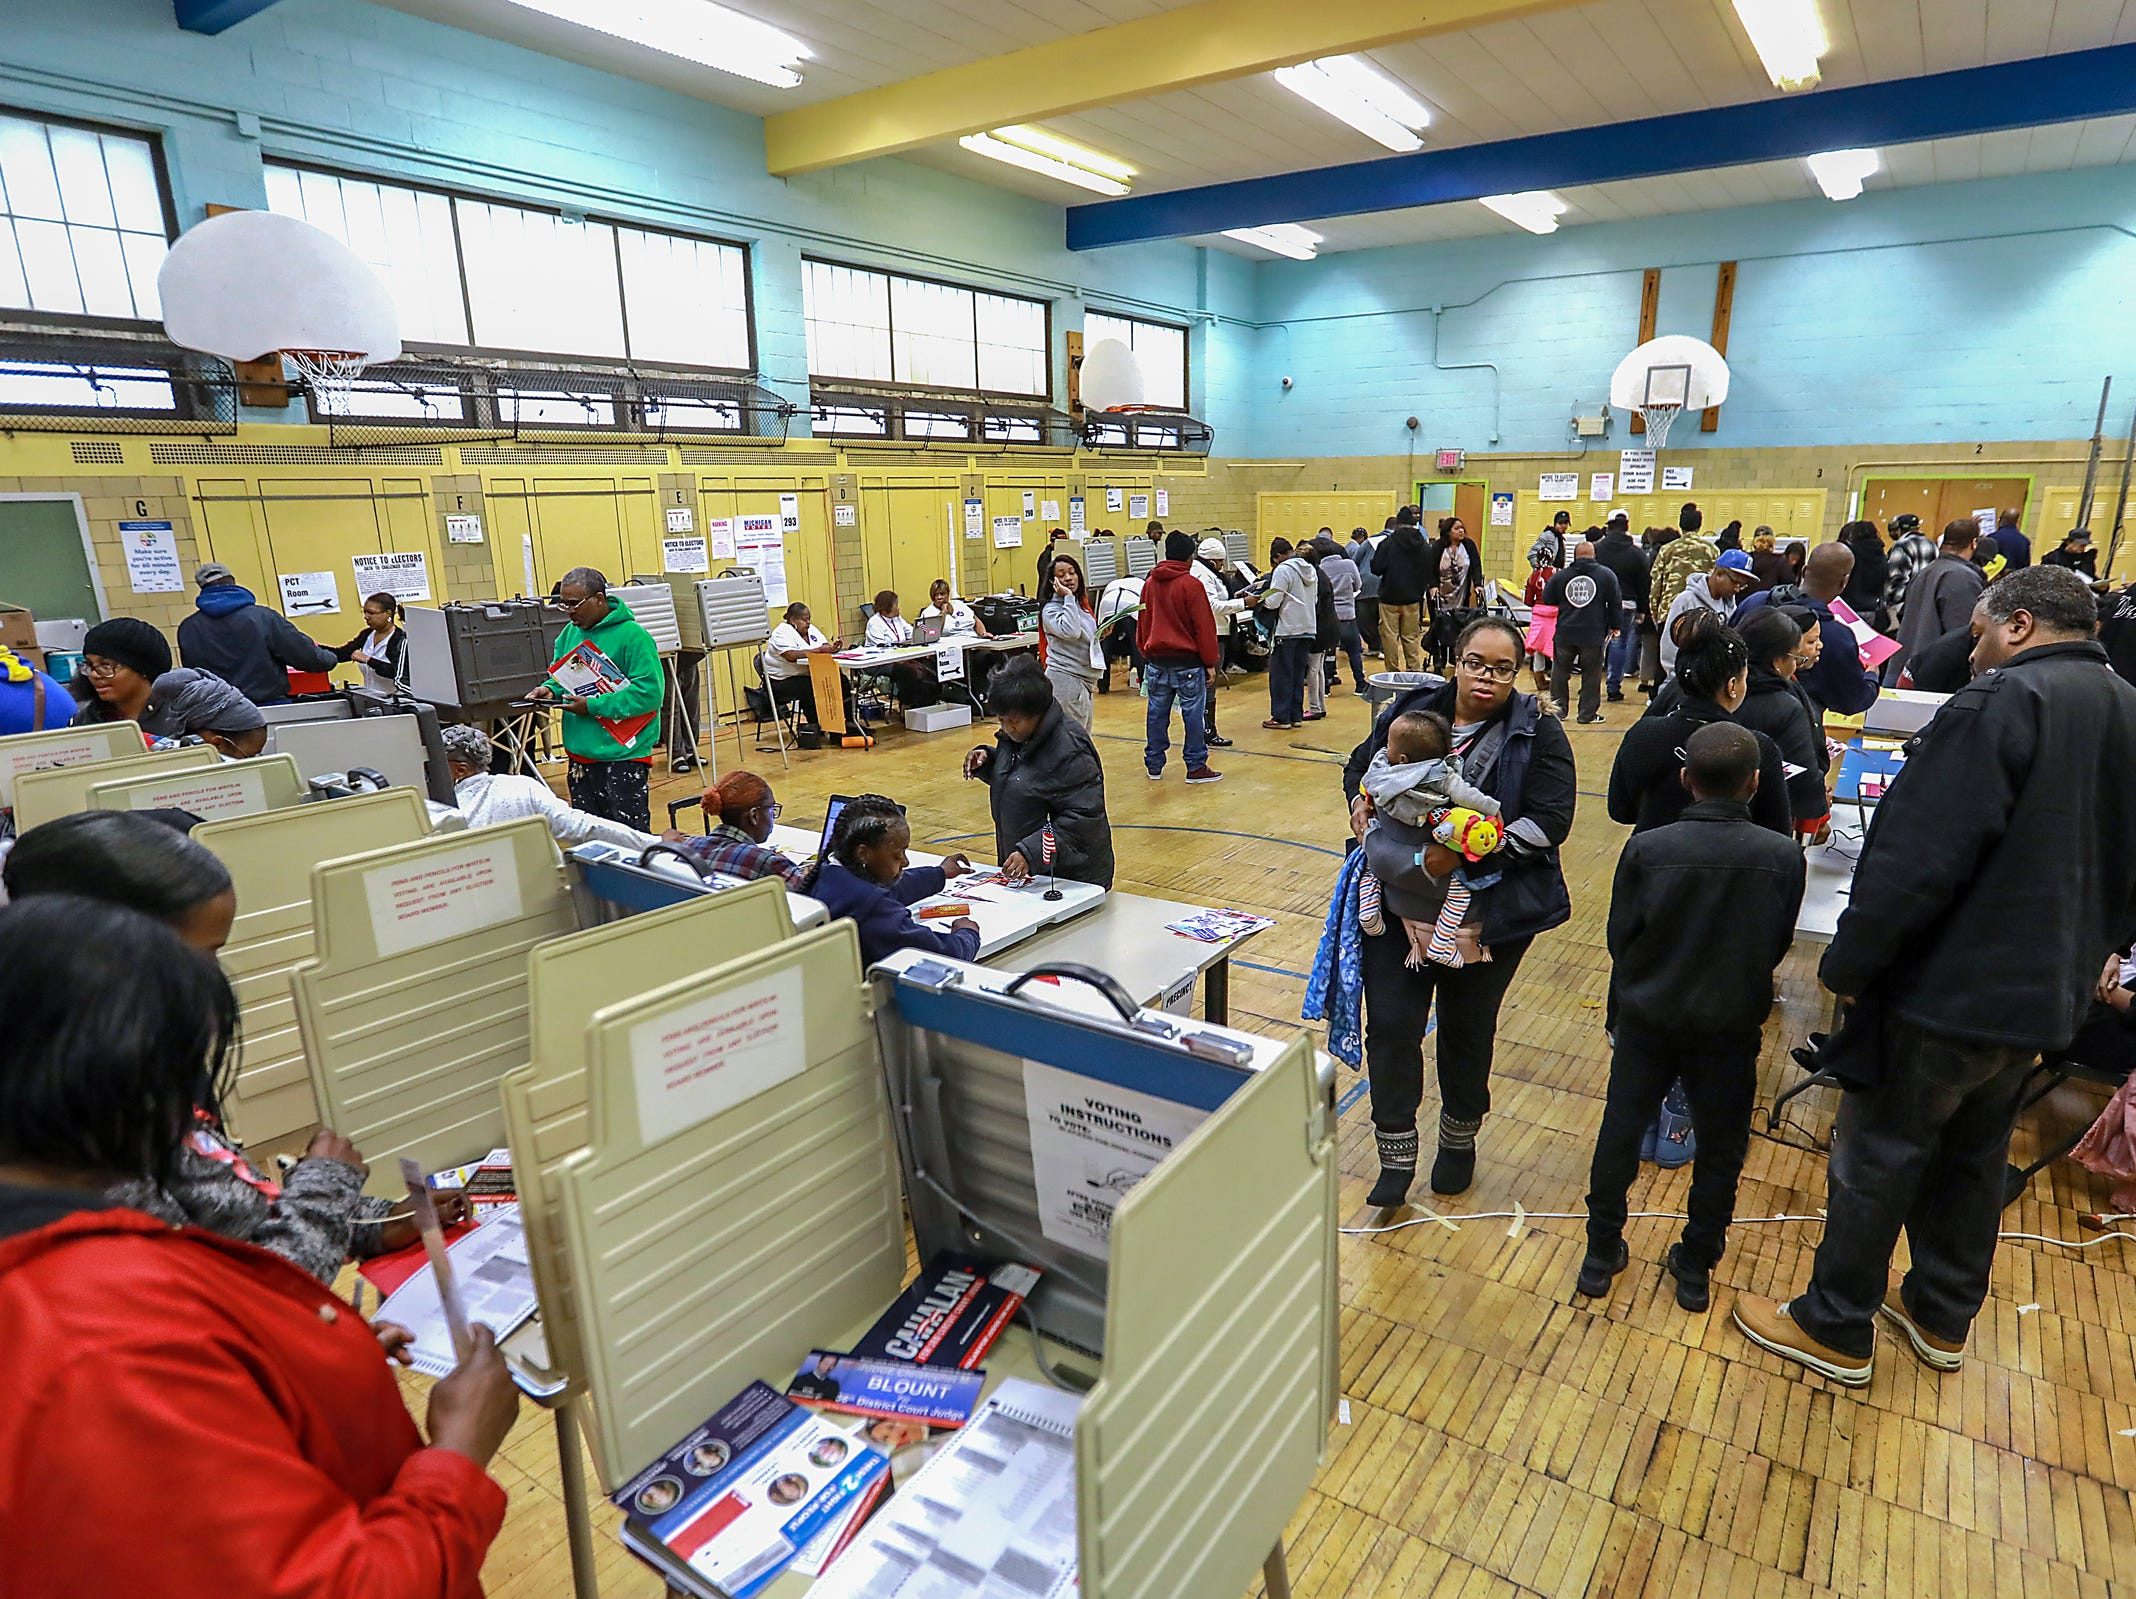 Voters stand in line waiting to vote at Bow Elementary School where multiple precincts are located for the midterm elections in Detroit on Tuesday, Nov. 6, 2018.